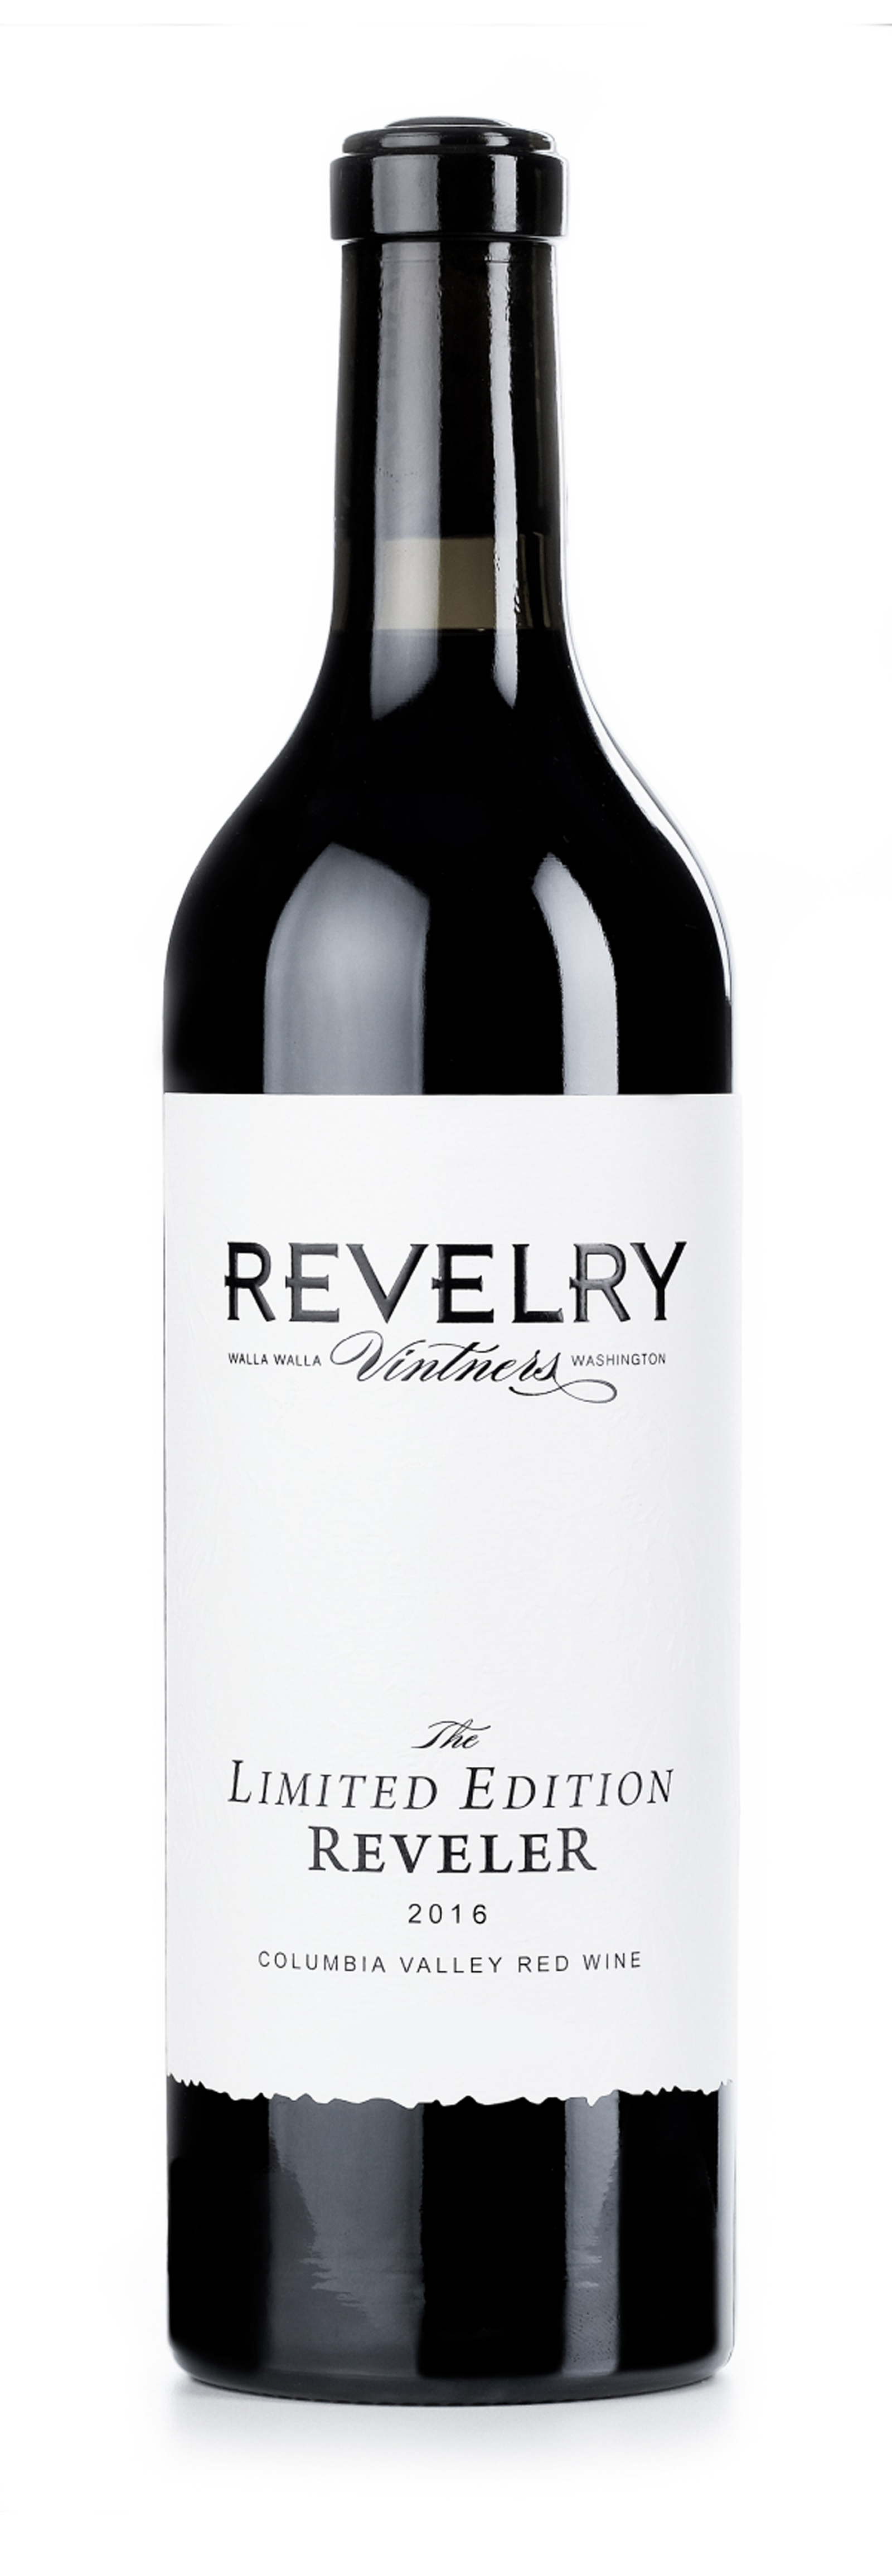 2016 THE 'LIMITED EDITION' REVELER